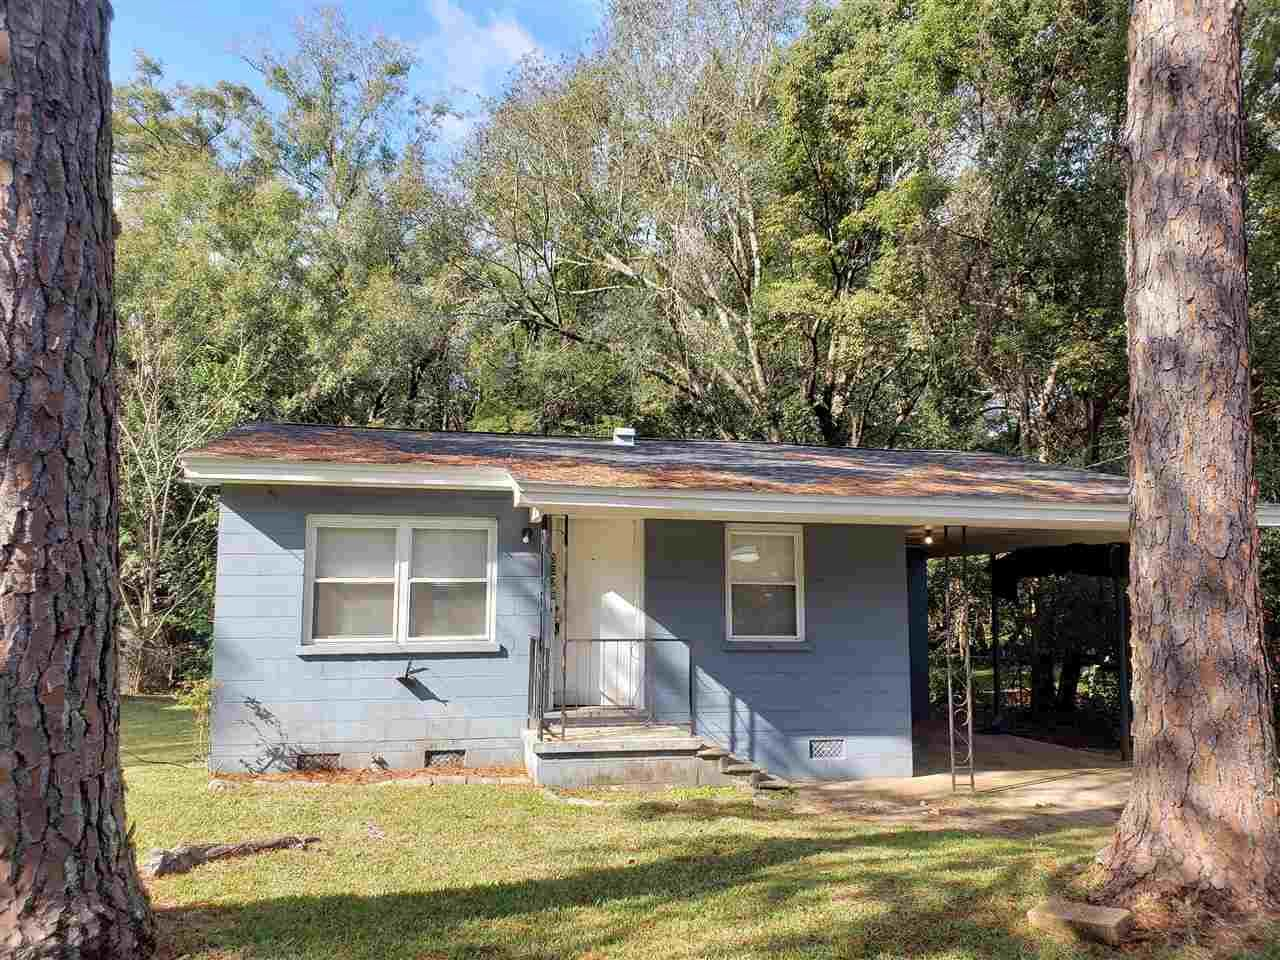 2028 HILLSBOROUGH Street, Tallahassee, FL 32310 - MLS#: 326004